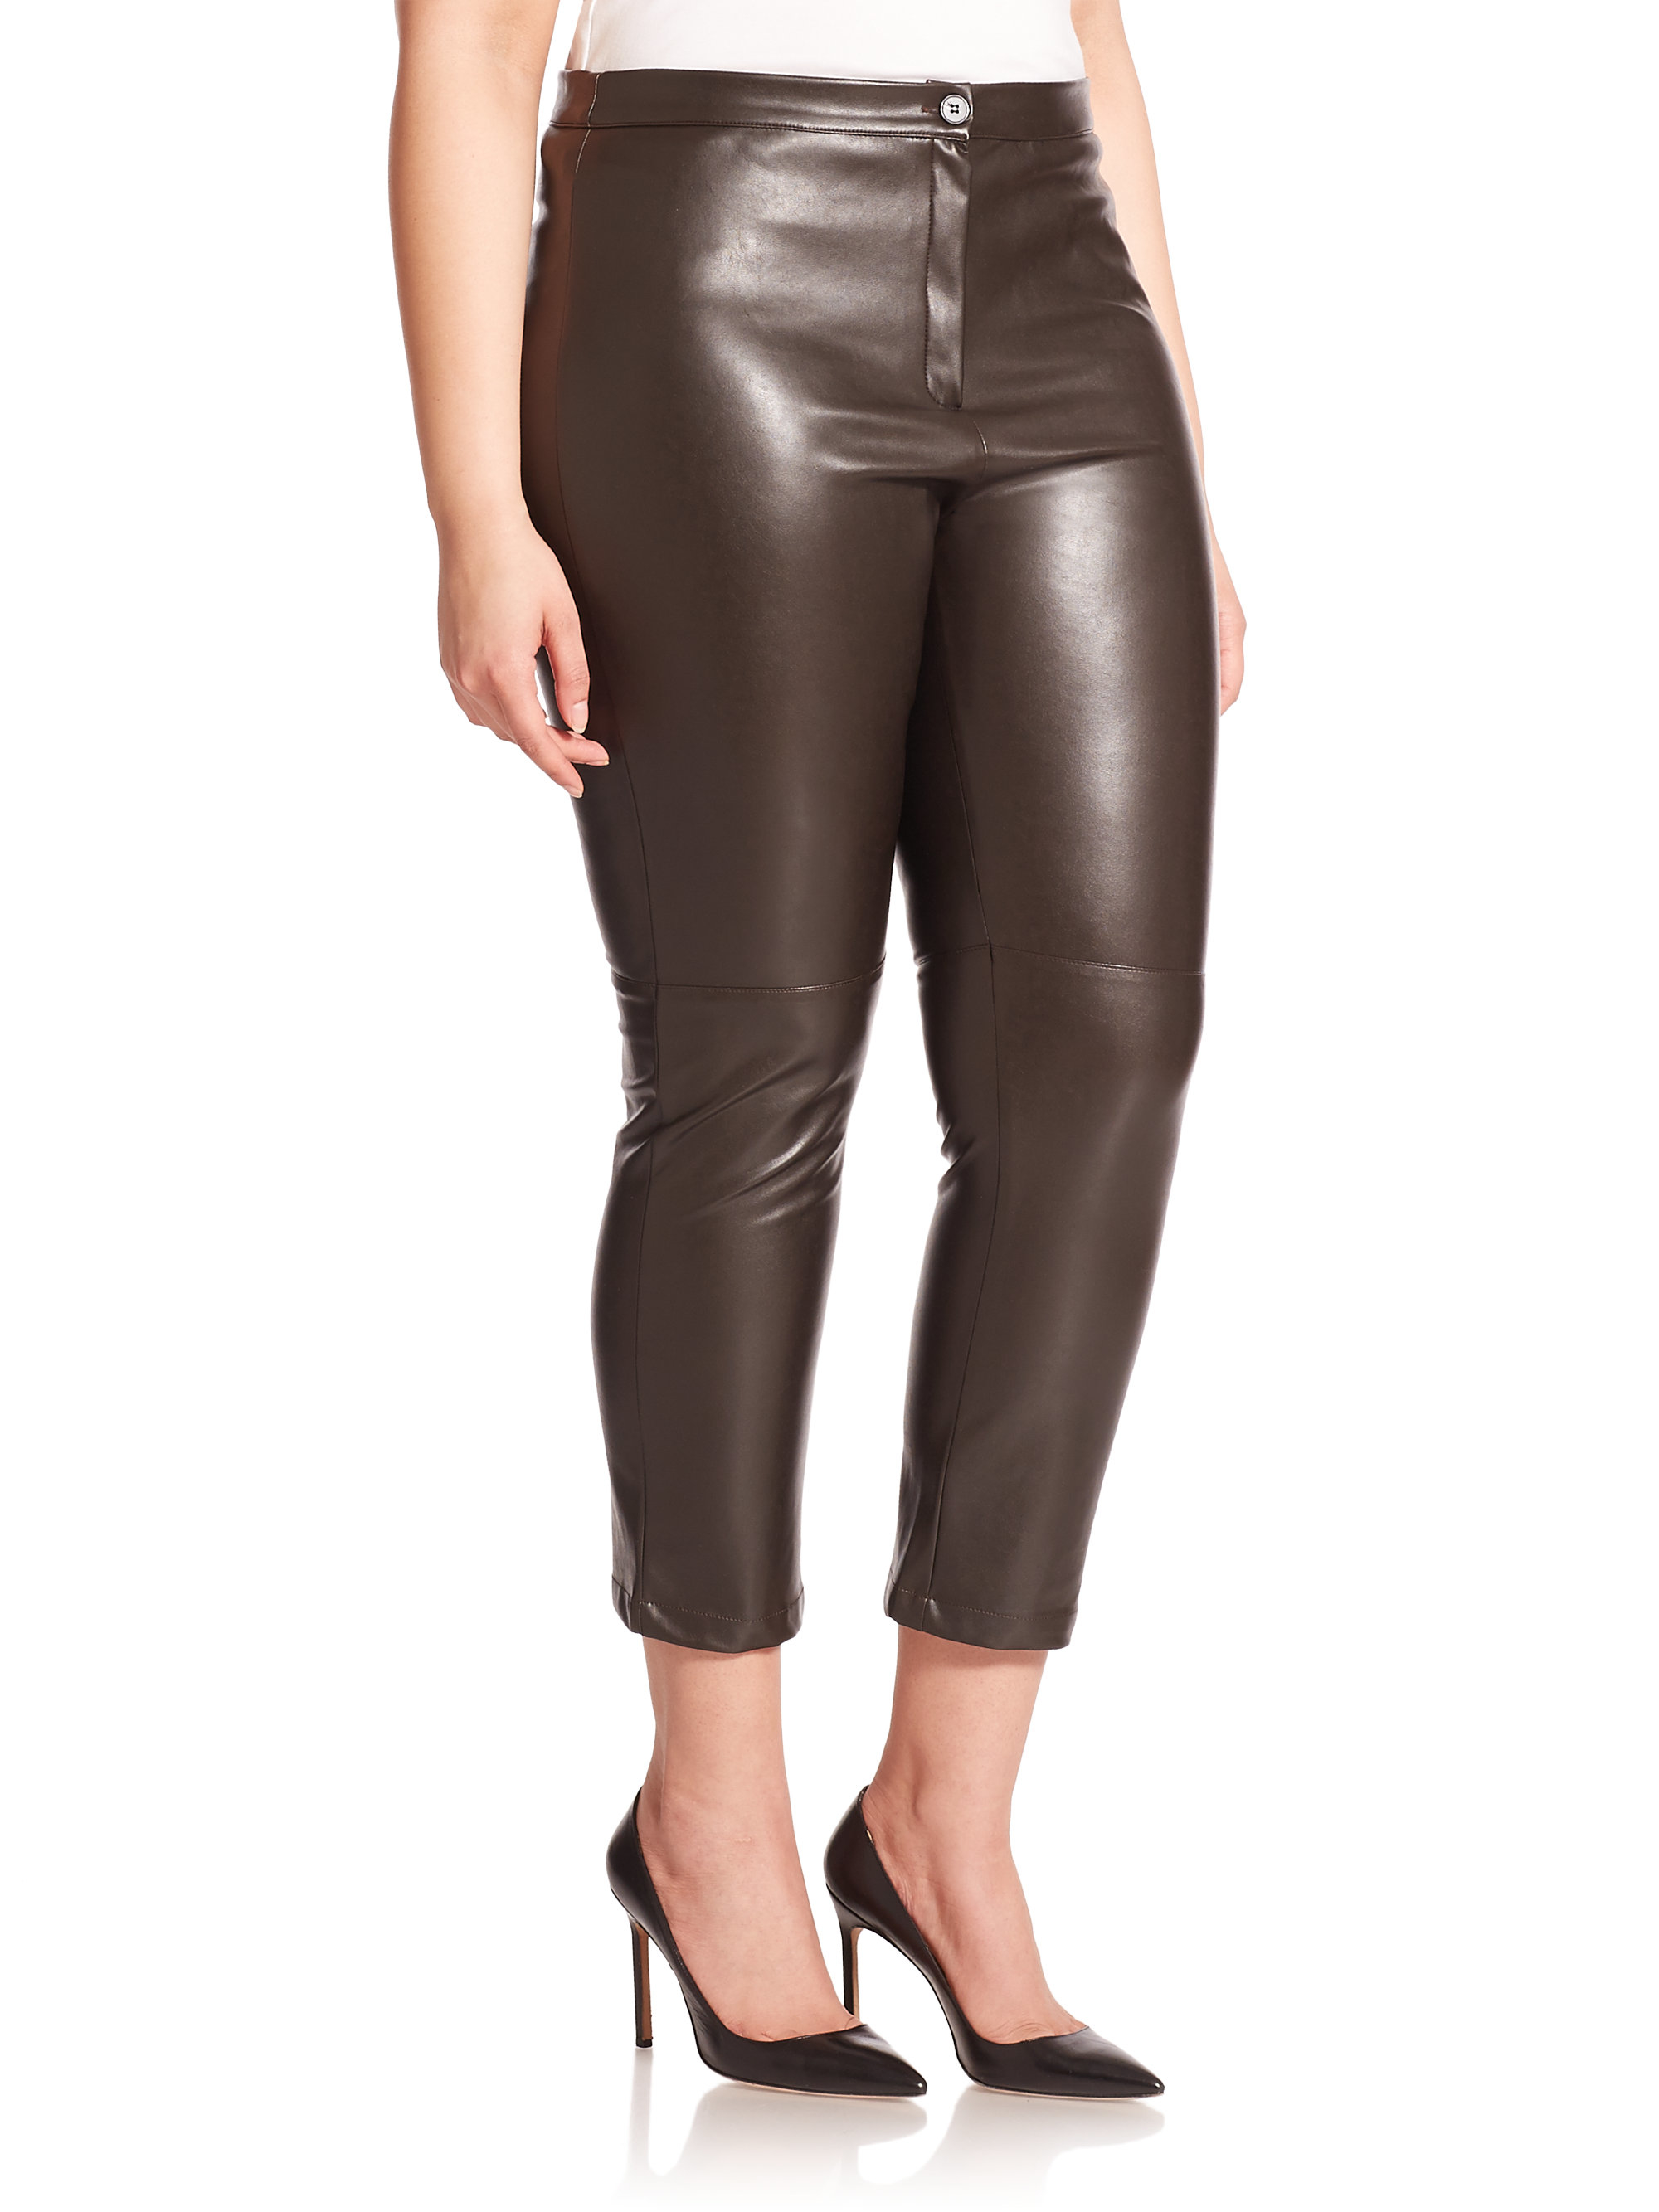 how to wear brown leather pants